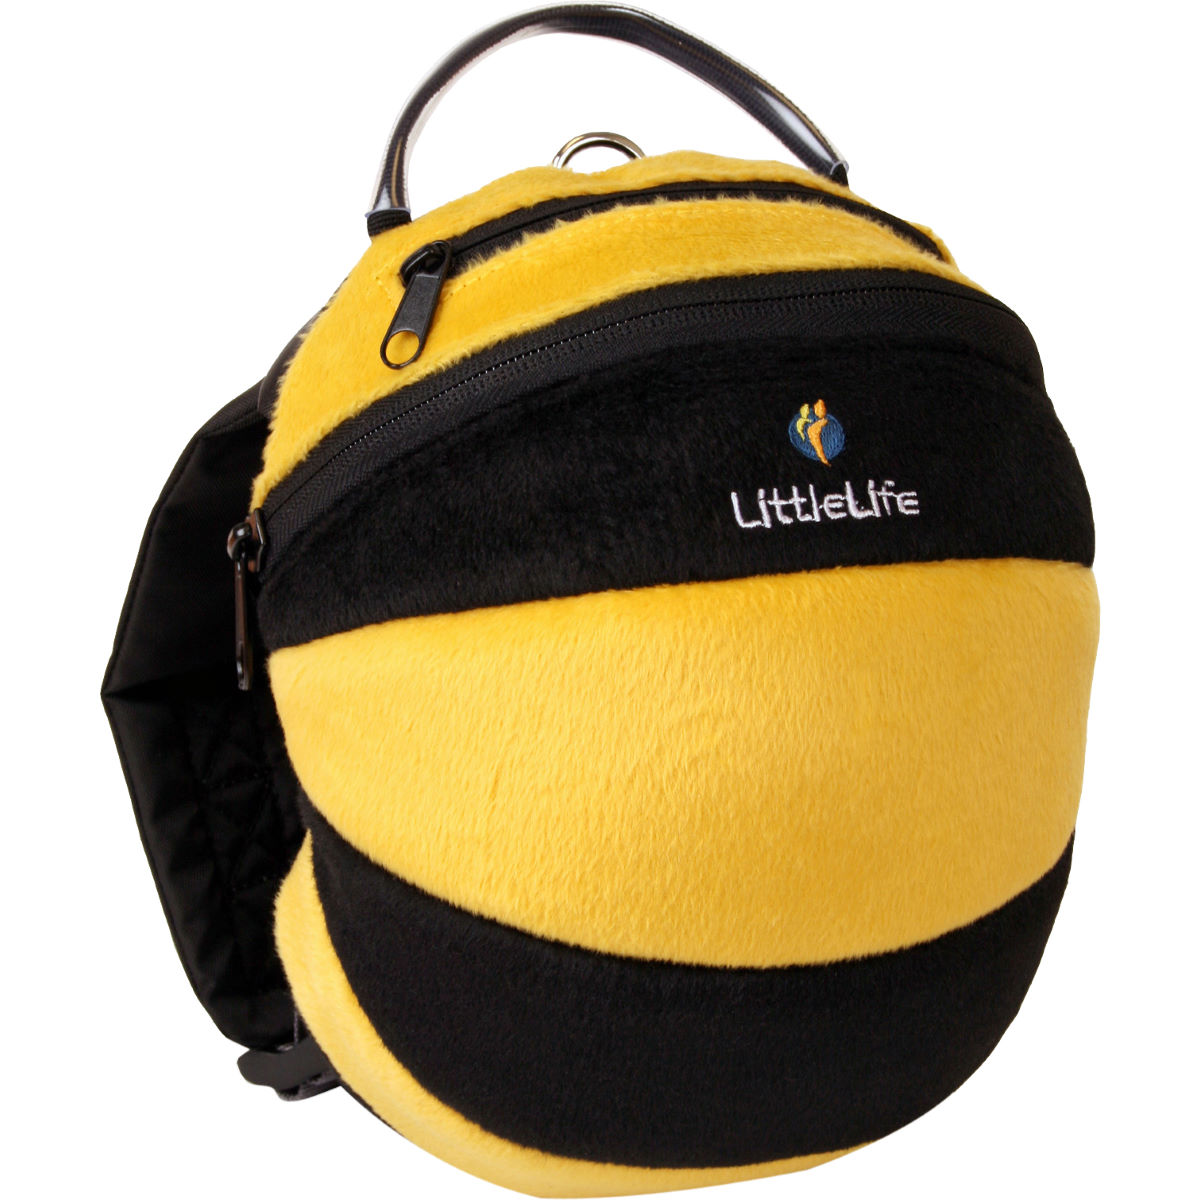 Littlelife LittleLife Toddler Furry Animal Daysack   Rucksacks